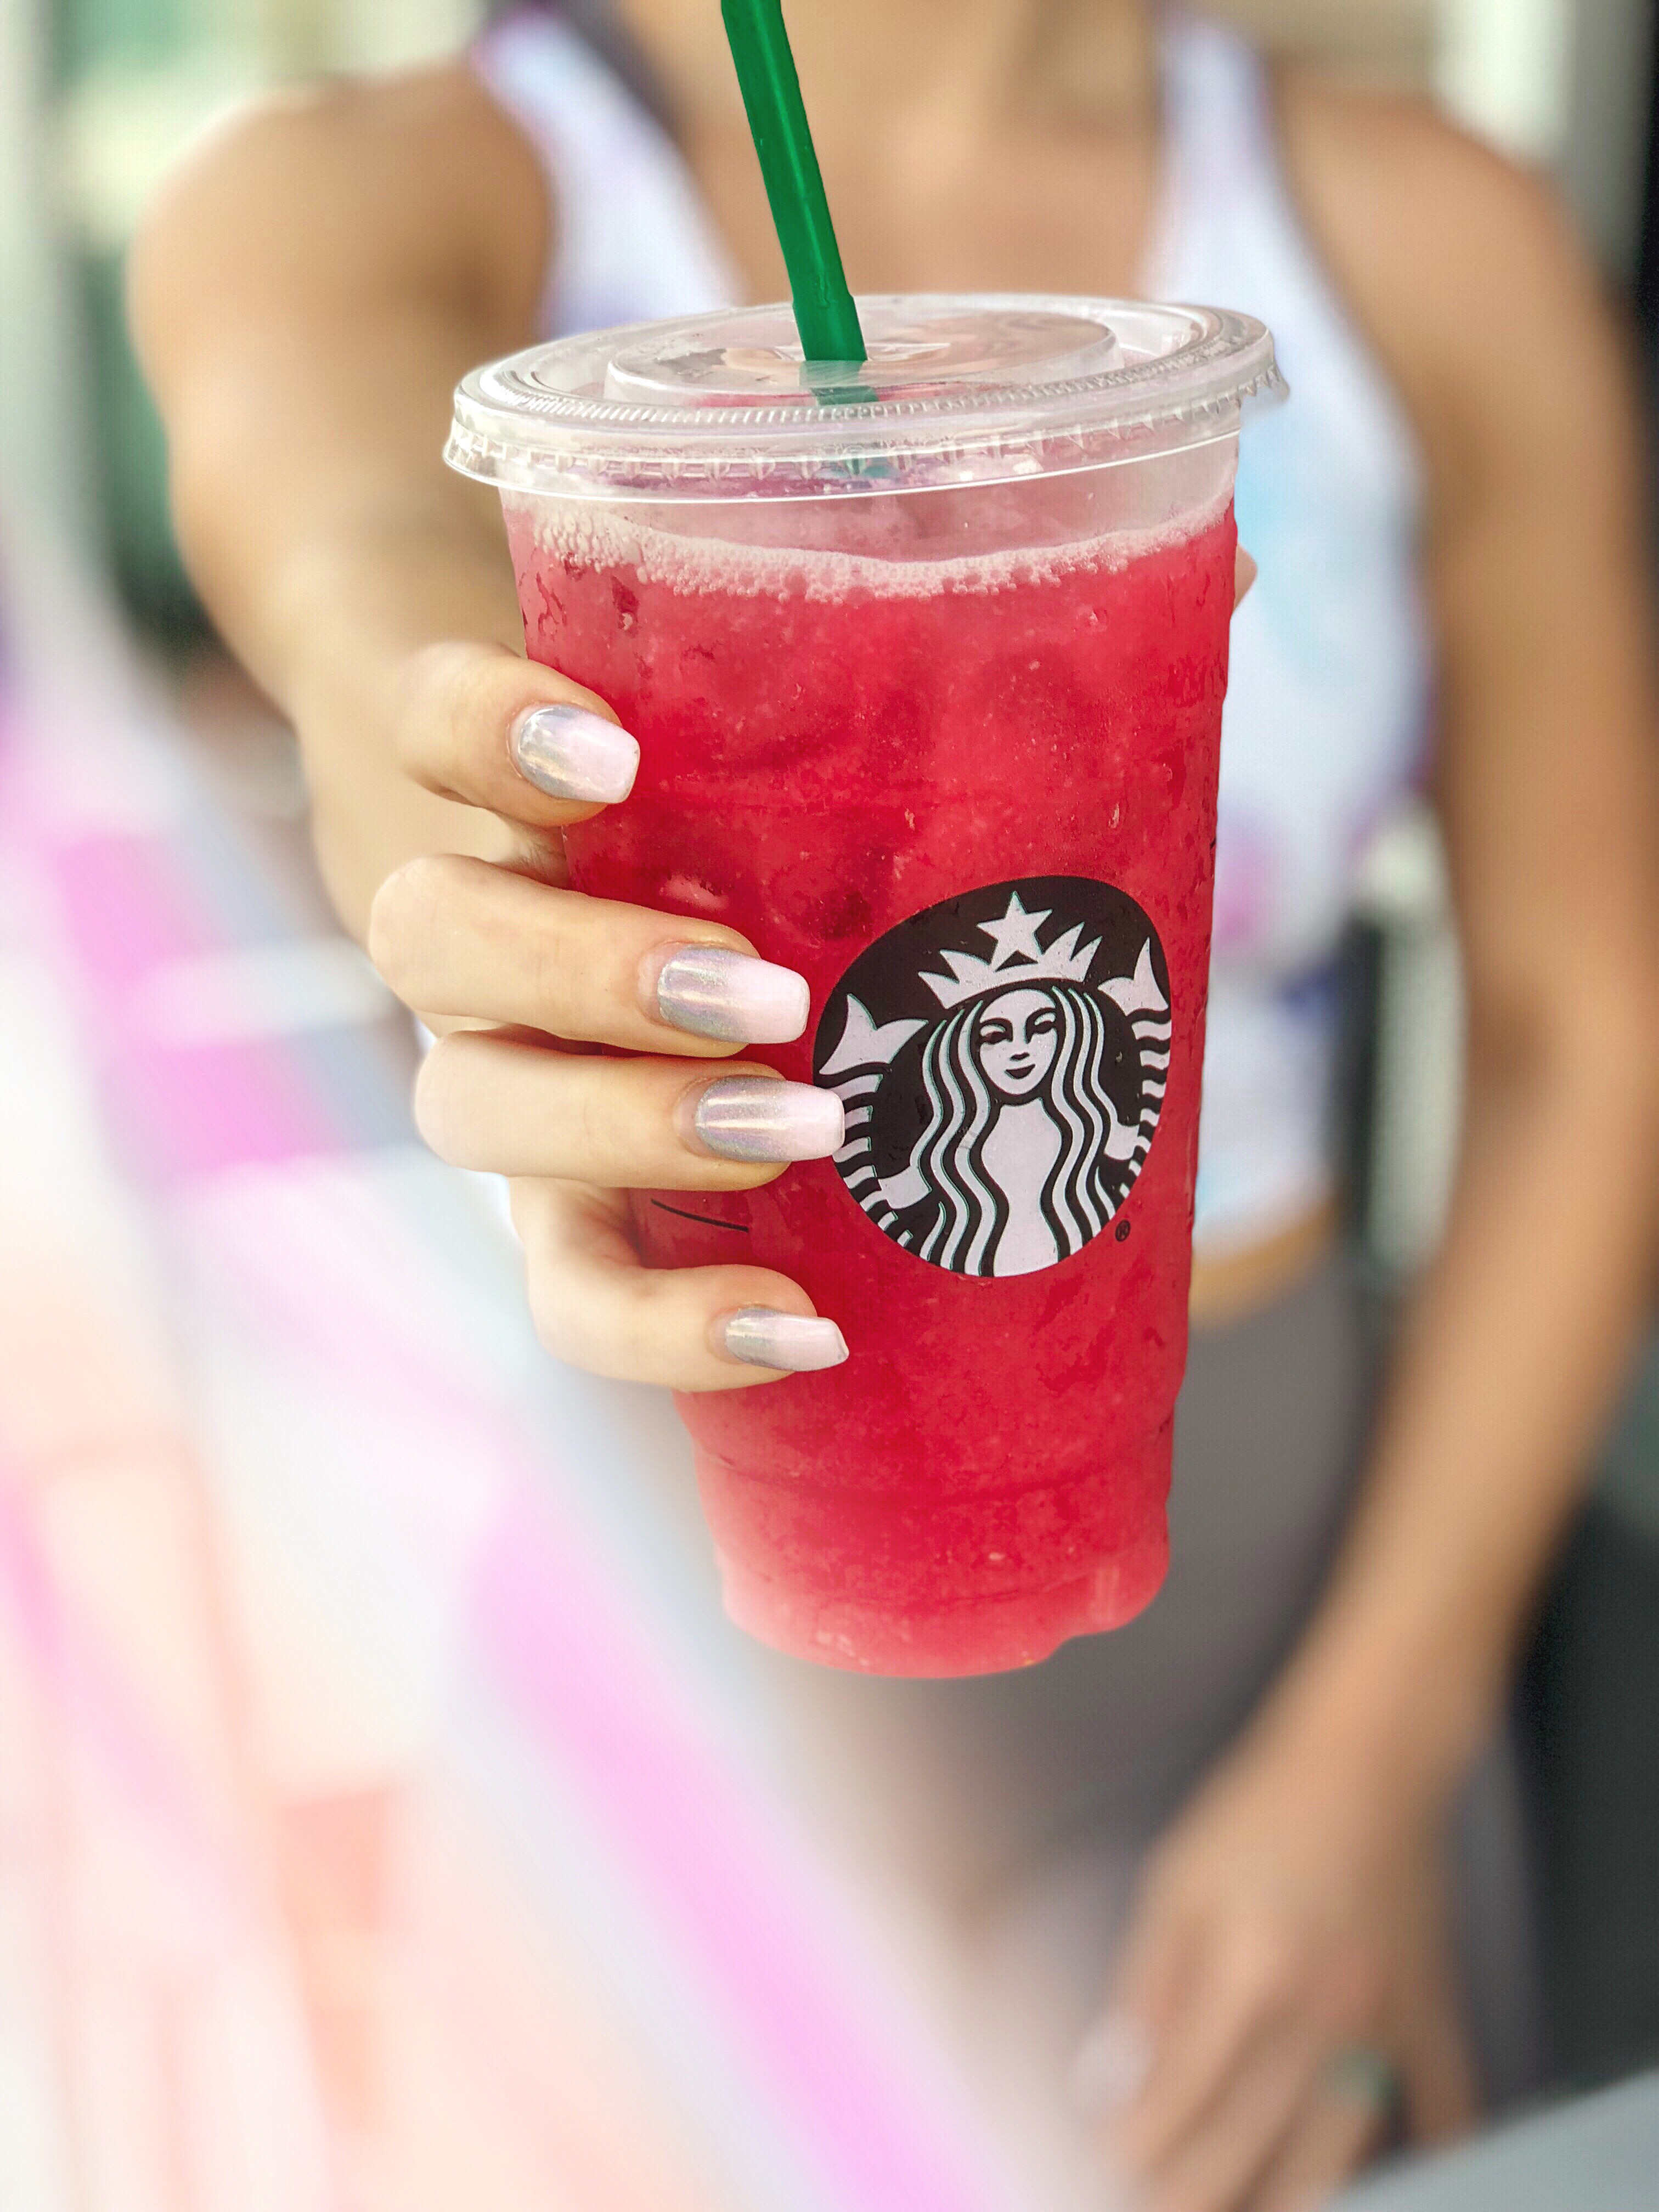 My Fave Low Carb Pink Drink From Starbucks Gift Card